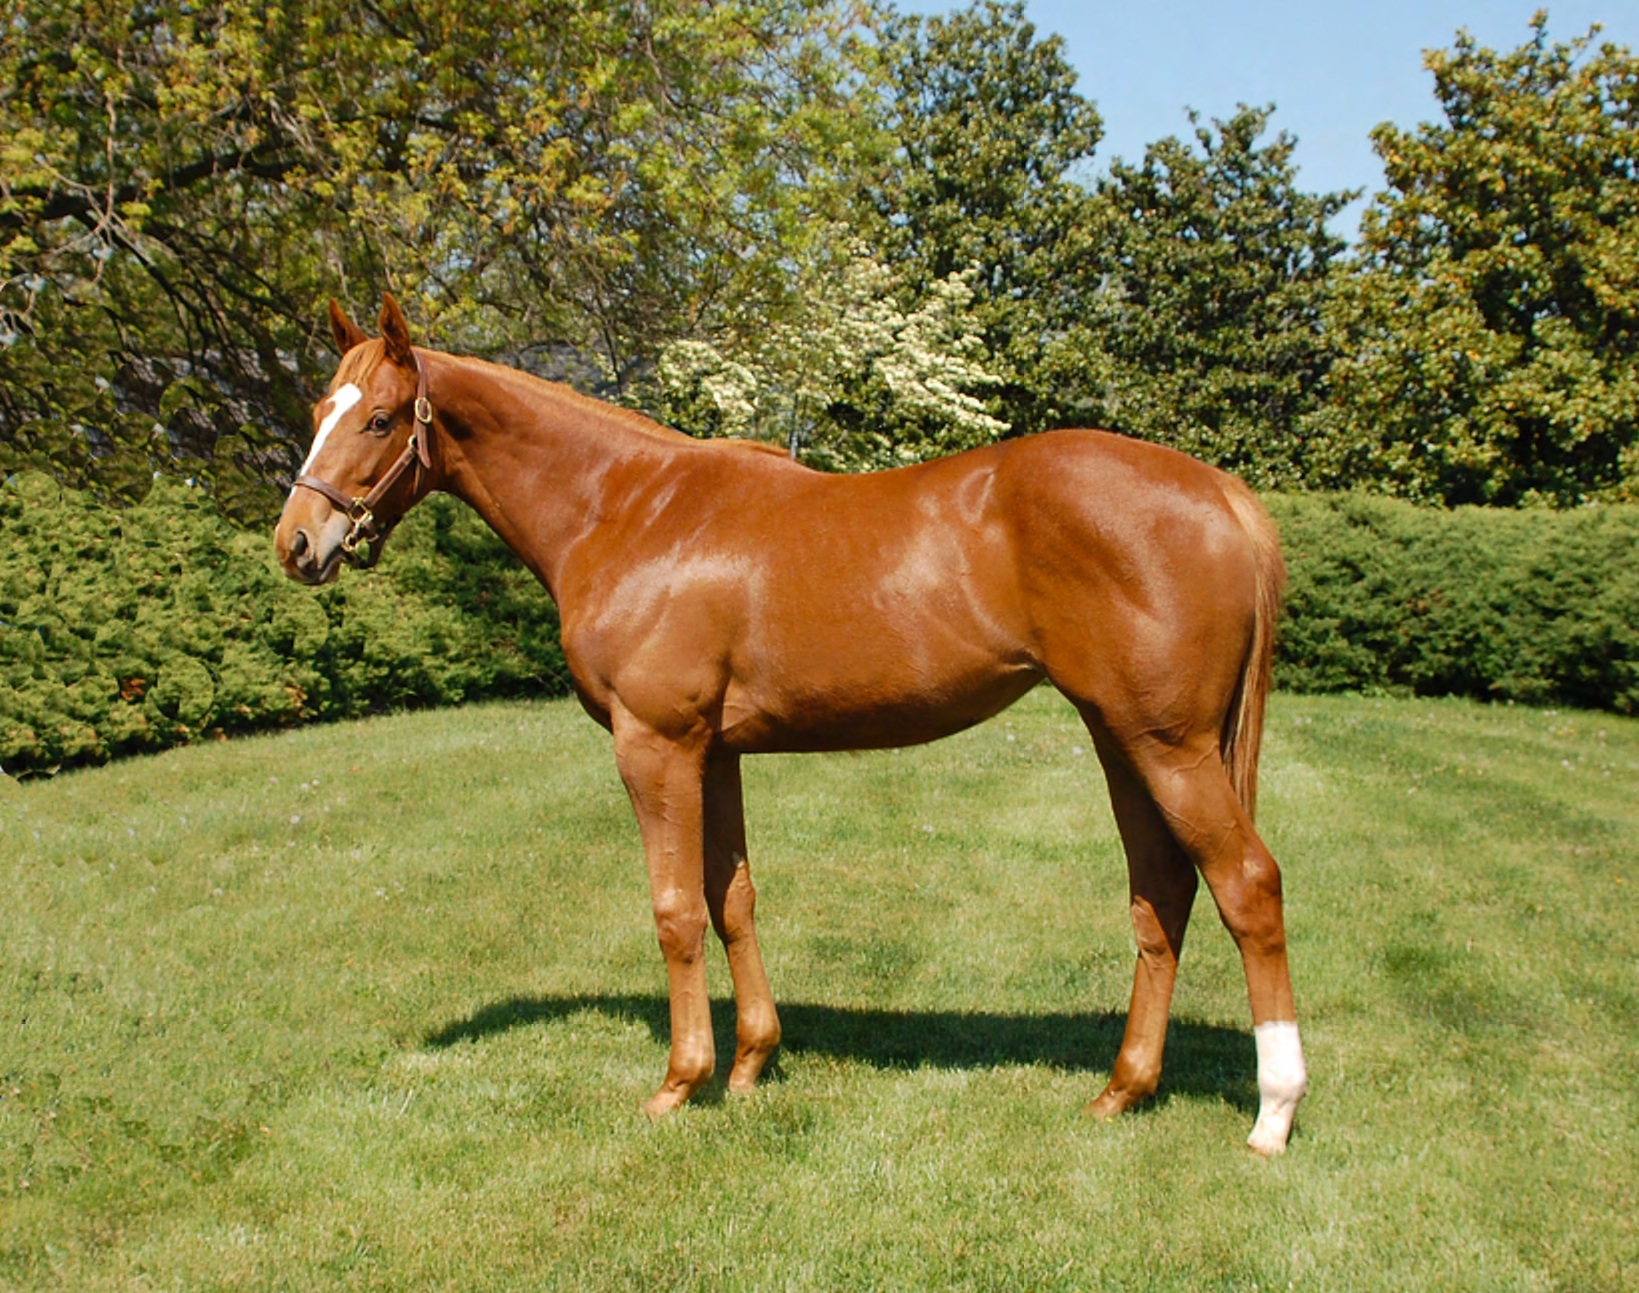 Virginia-bred Stellar Wind as a yearling at Keswick Farm.